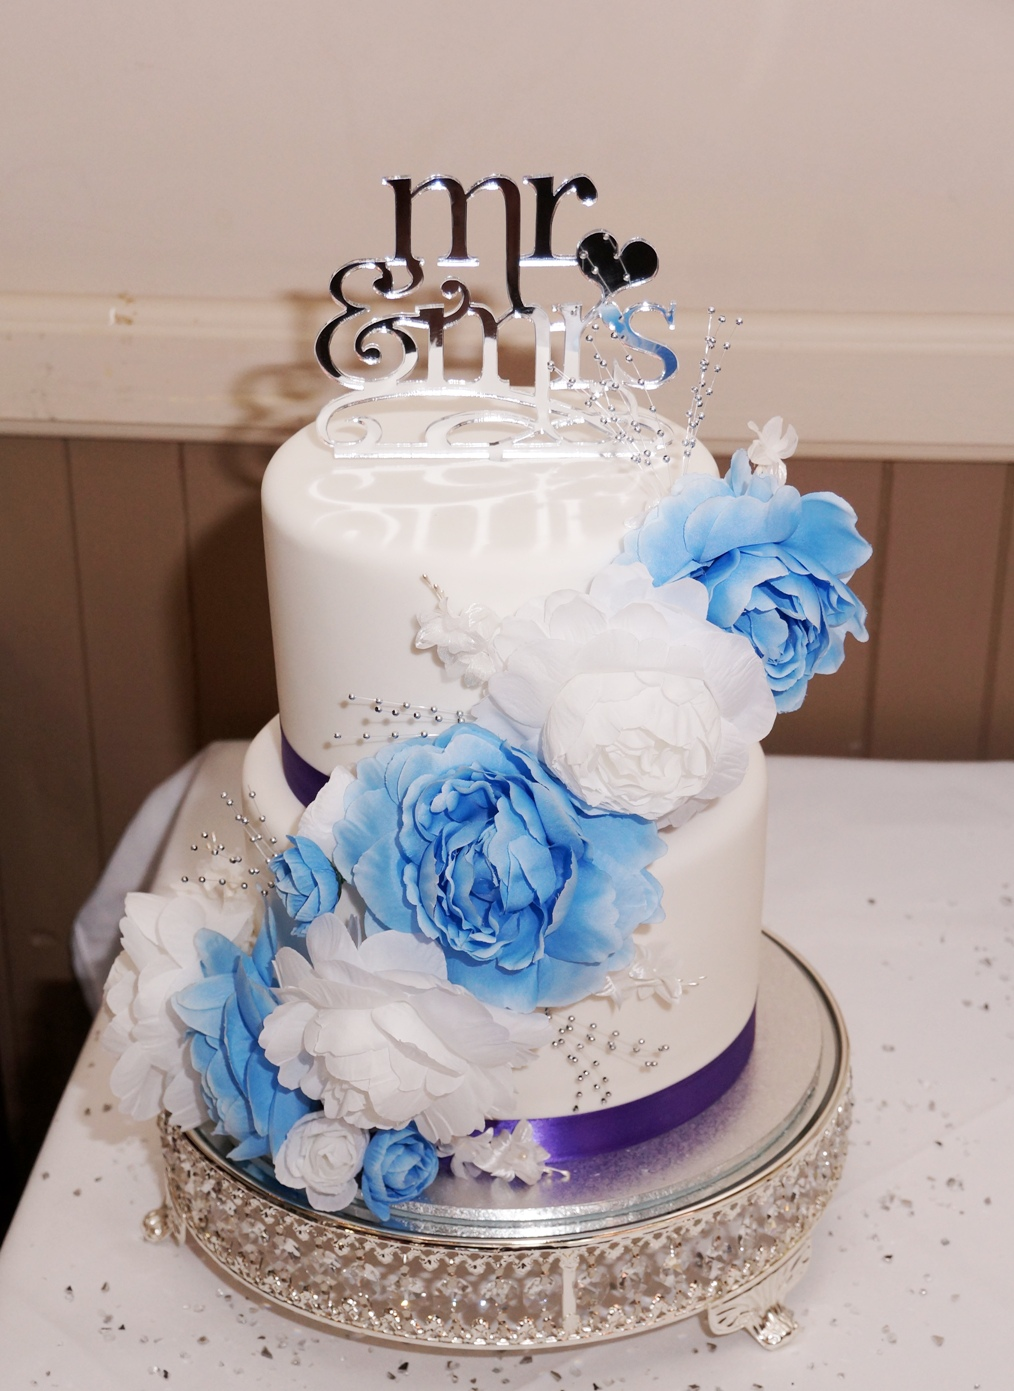 White fondant with blue and purple highl